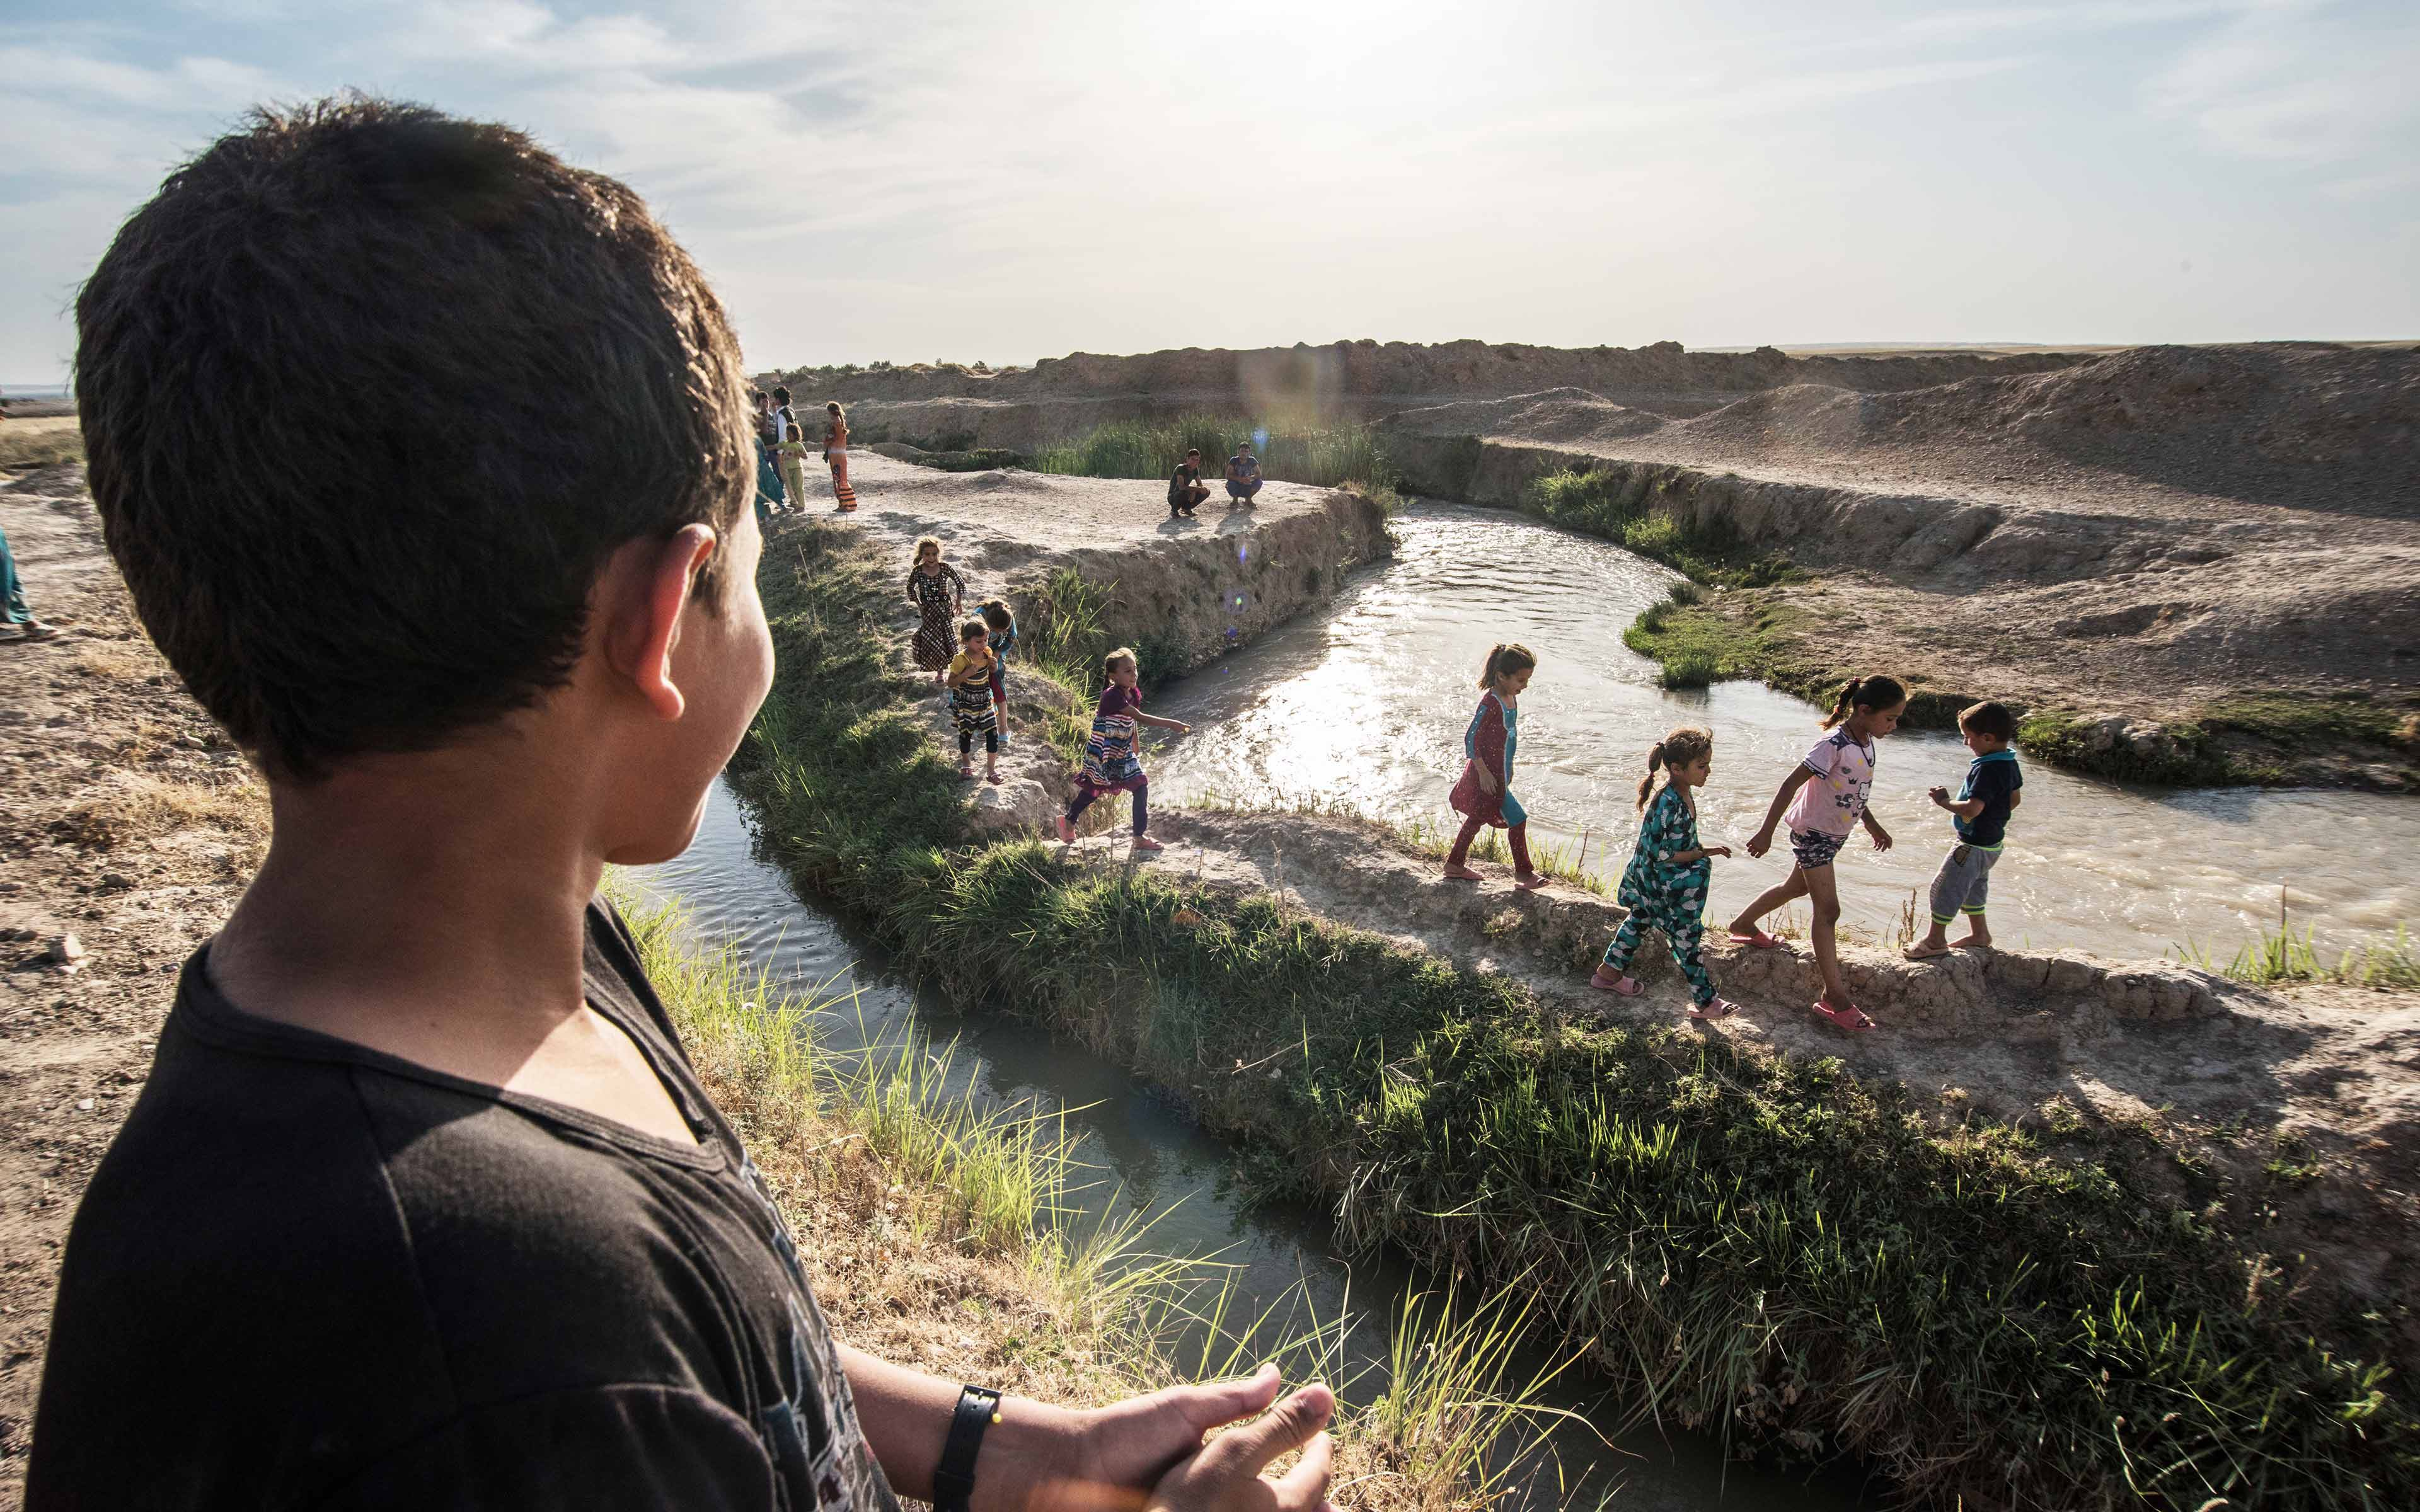 Forced from their homes when ISIS occupied their neighborhoods, these Iraqi children have found a new place to play near an abandoned farm building where some of their families now live.